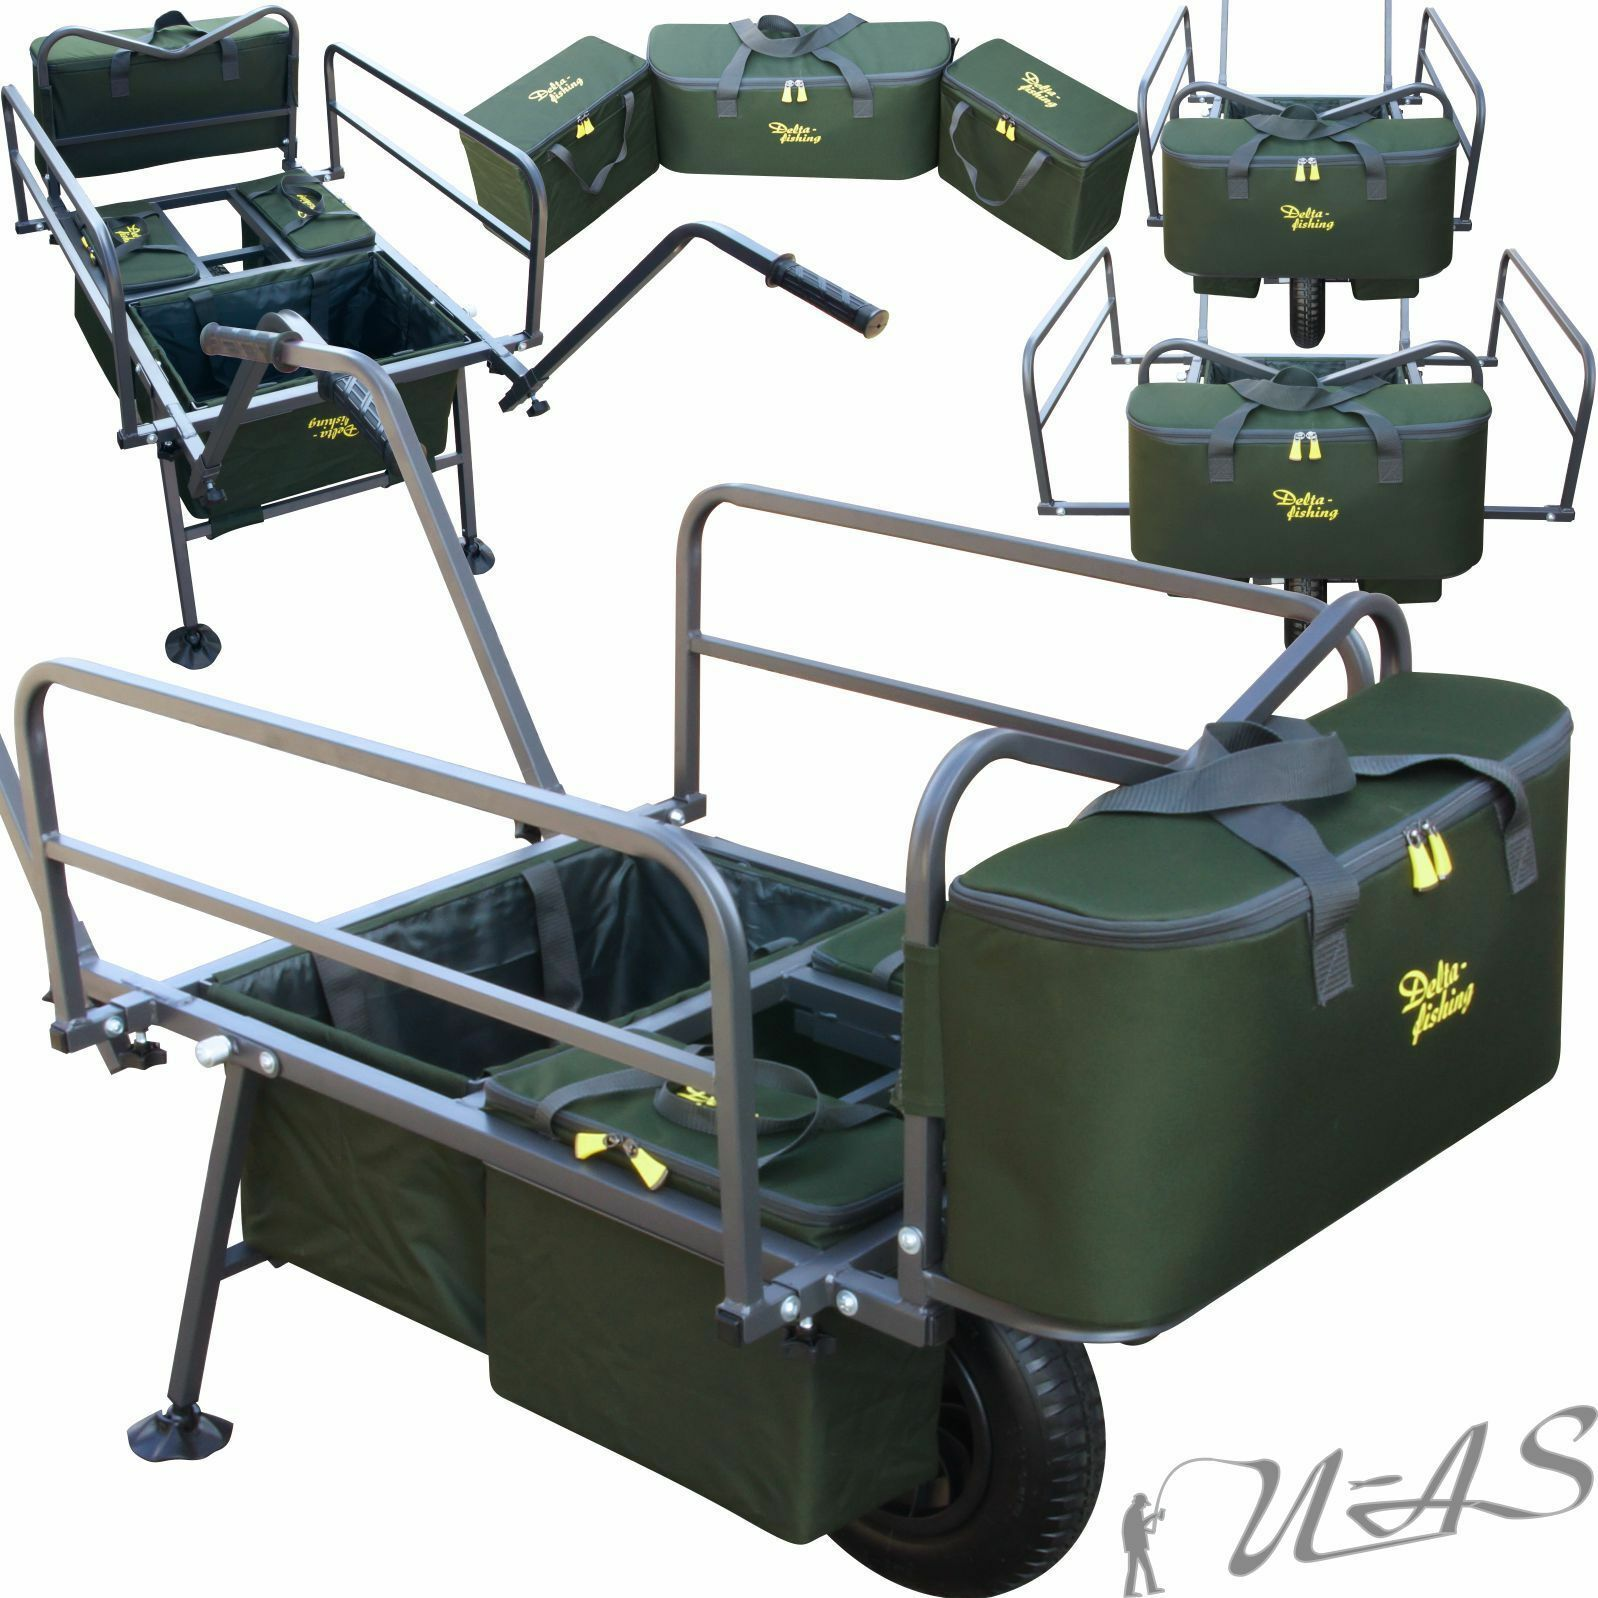 DELTA pesca XL Trolley Prestige 4 tasche autoP Barrow Angel Trolley autorello RBA